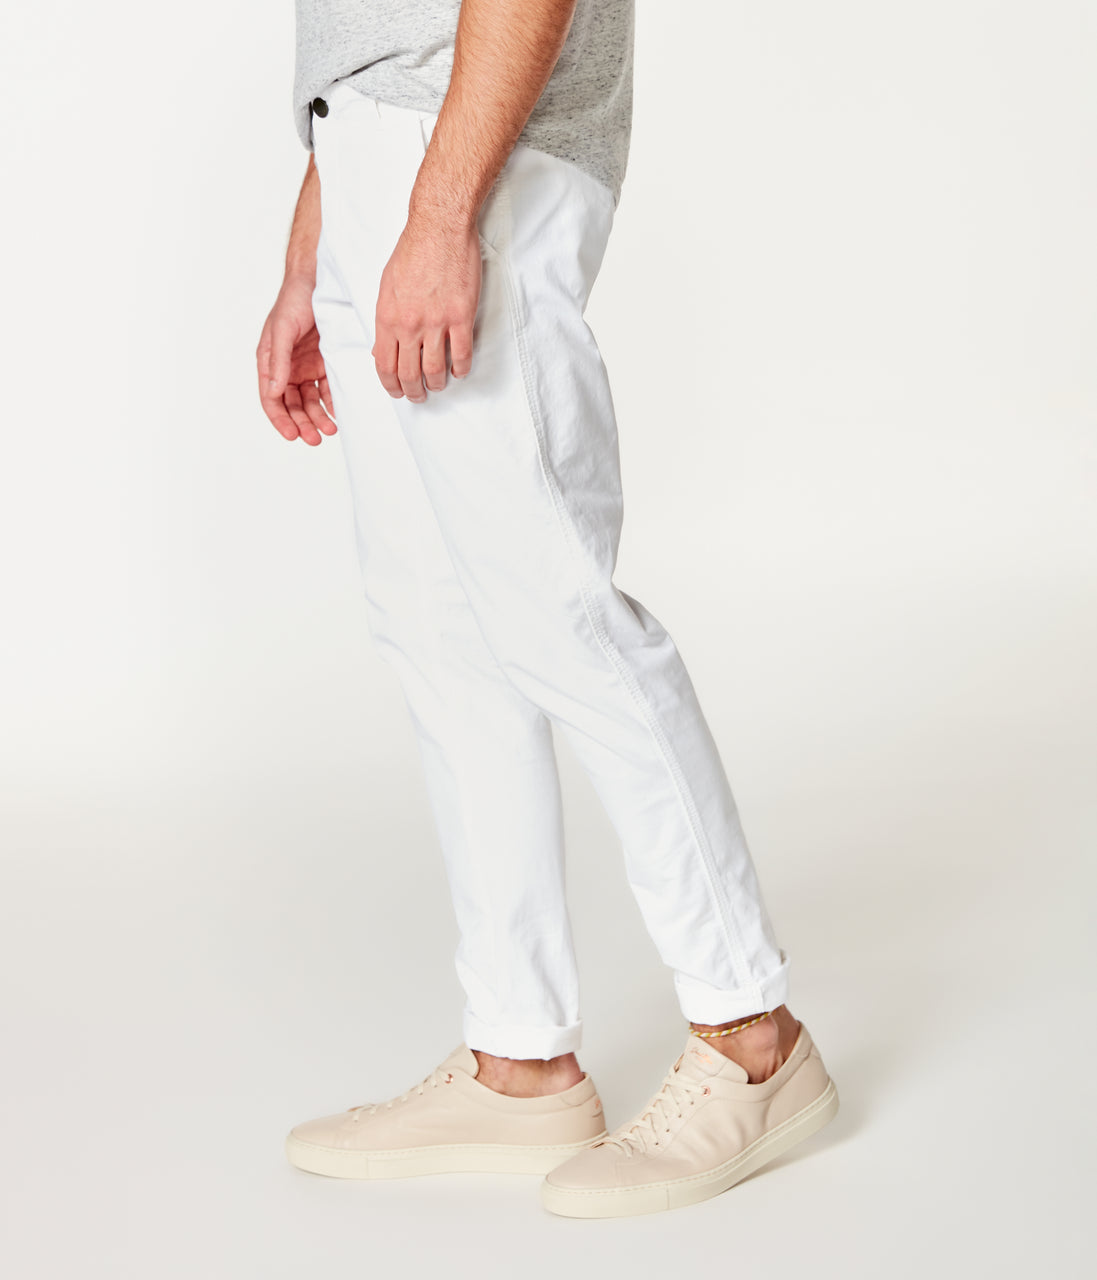 Pro Stretch Twill Star Chino - White - Good Man Brand - Pro Stretch Twill Star Chino - White